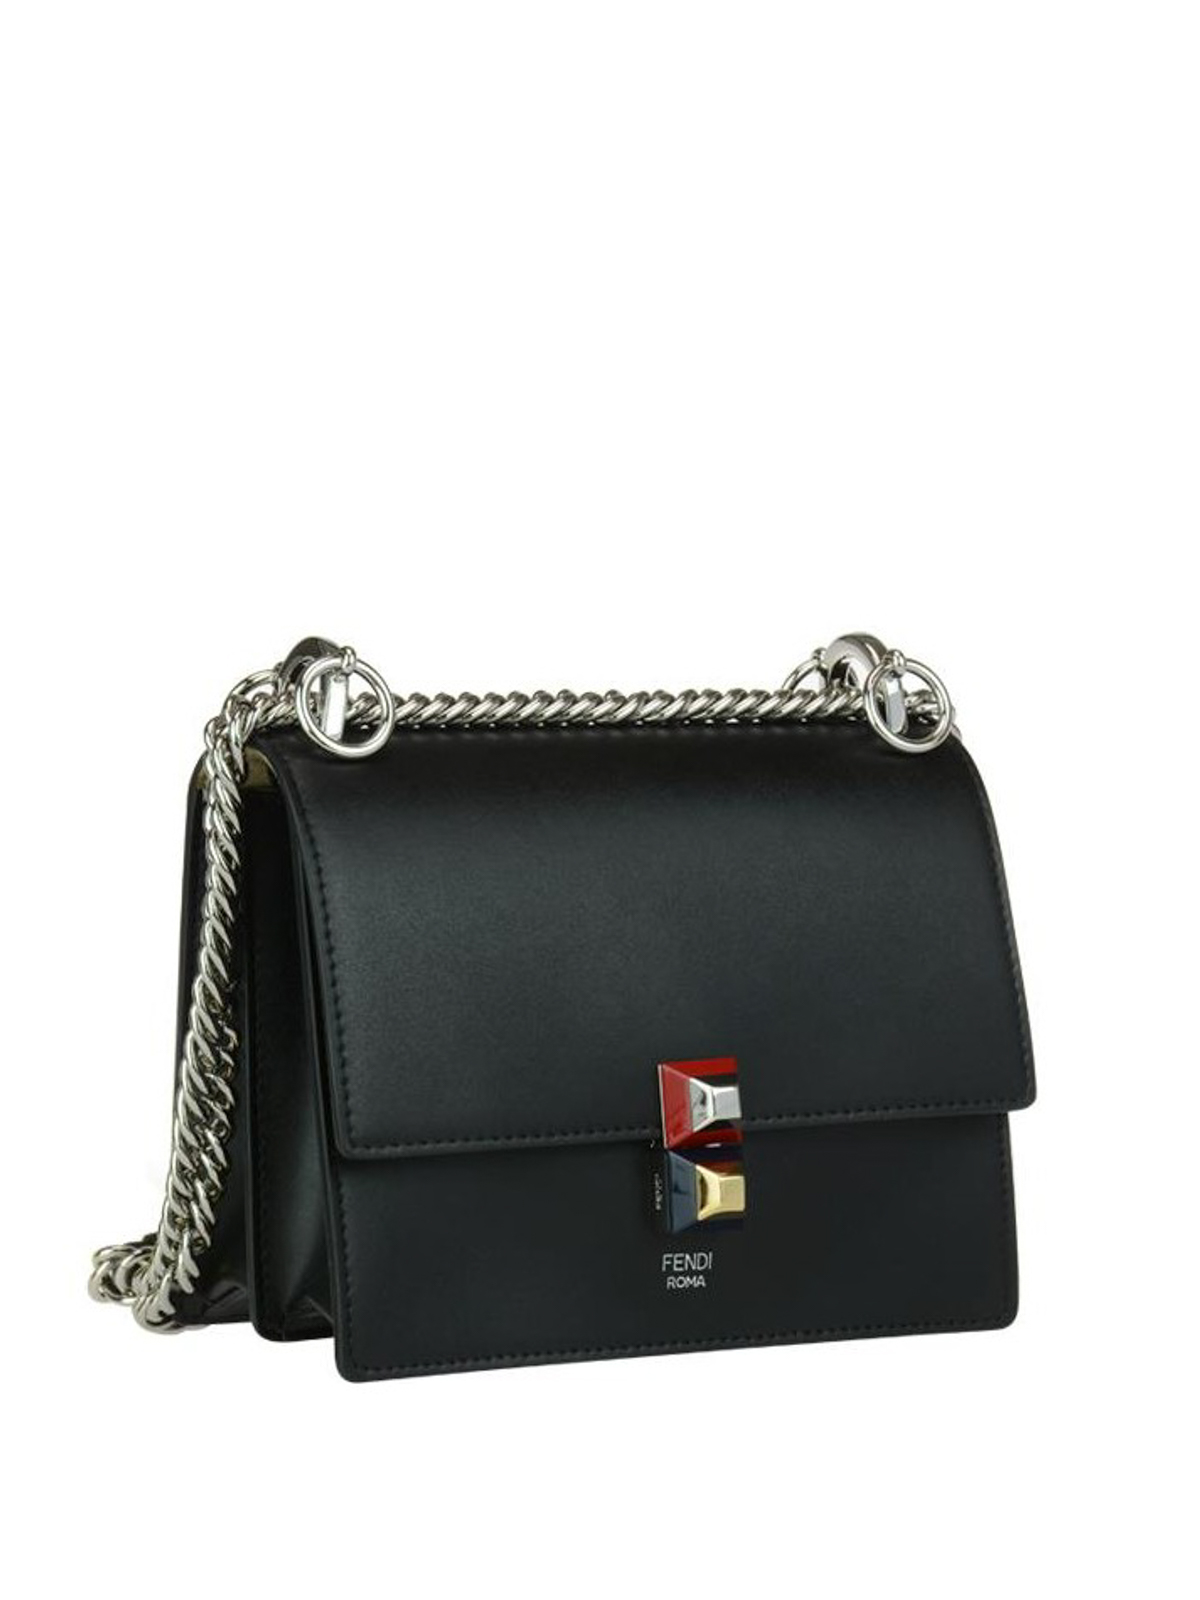 0fd02a88f89a FENDI  cross body bags online - Kan I small black leather bag